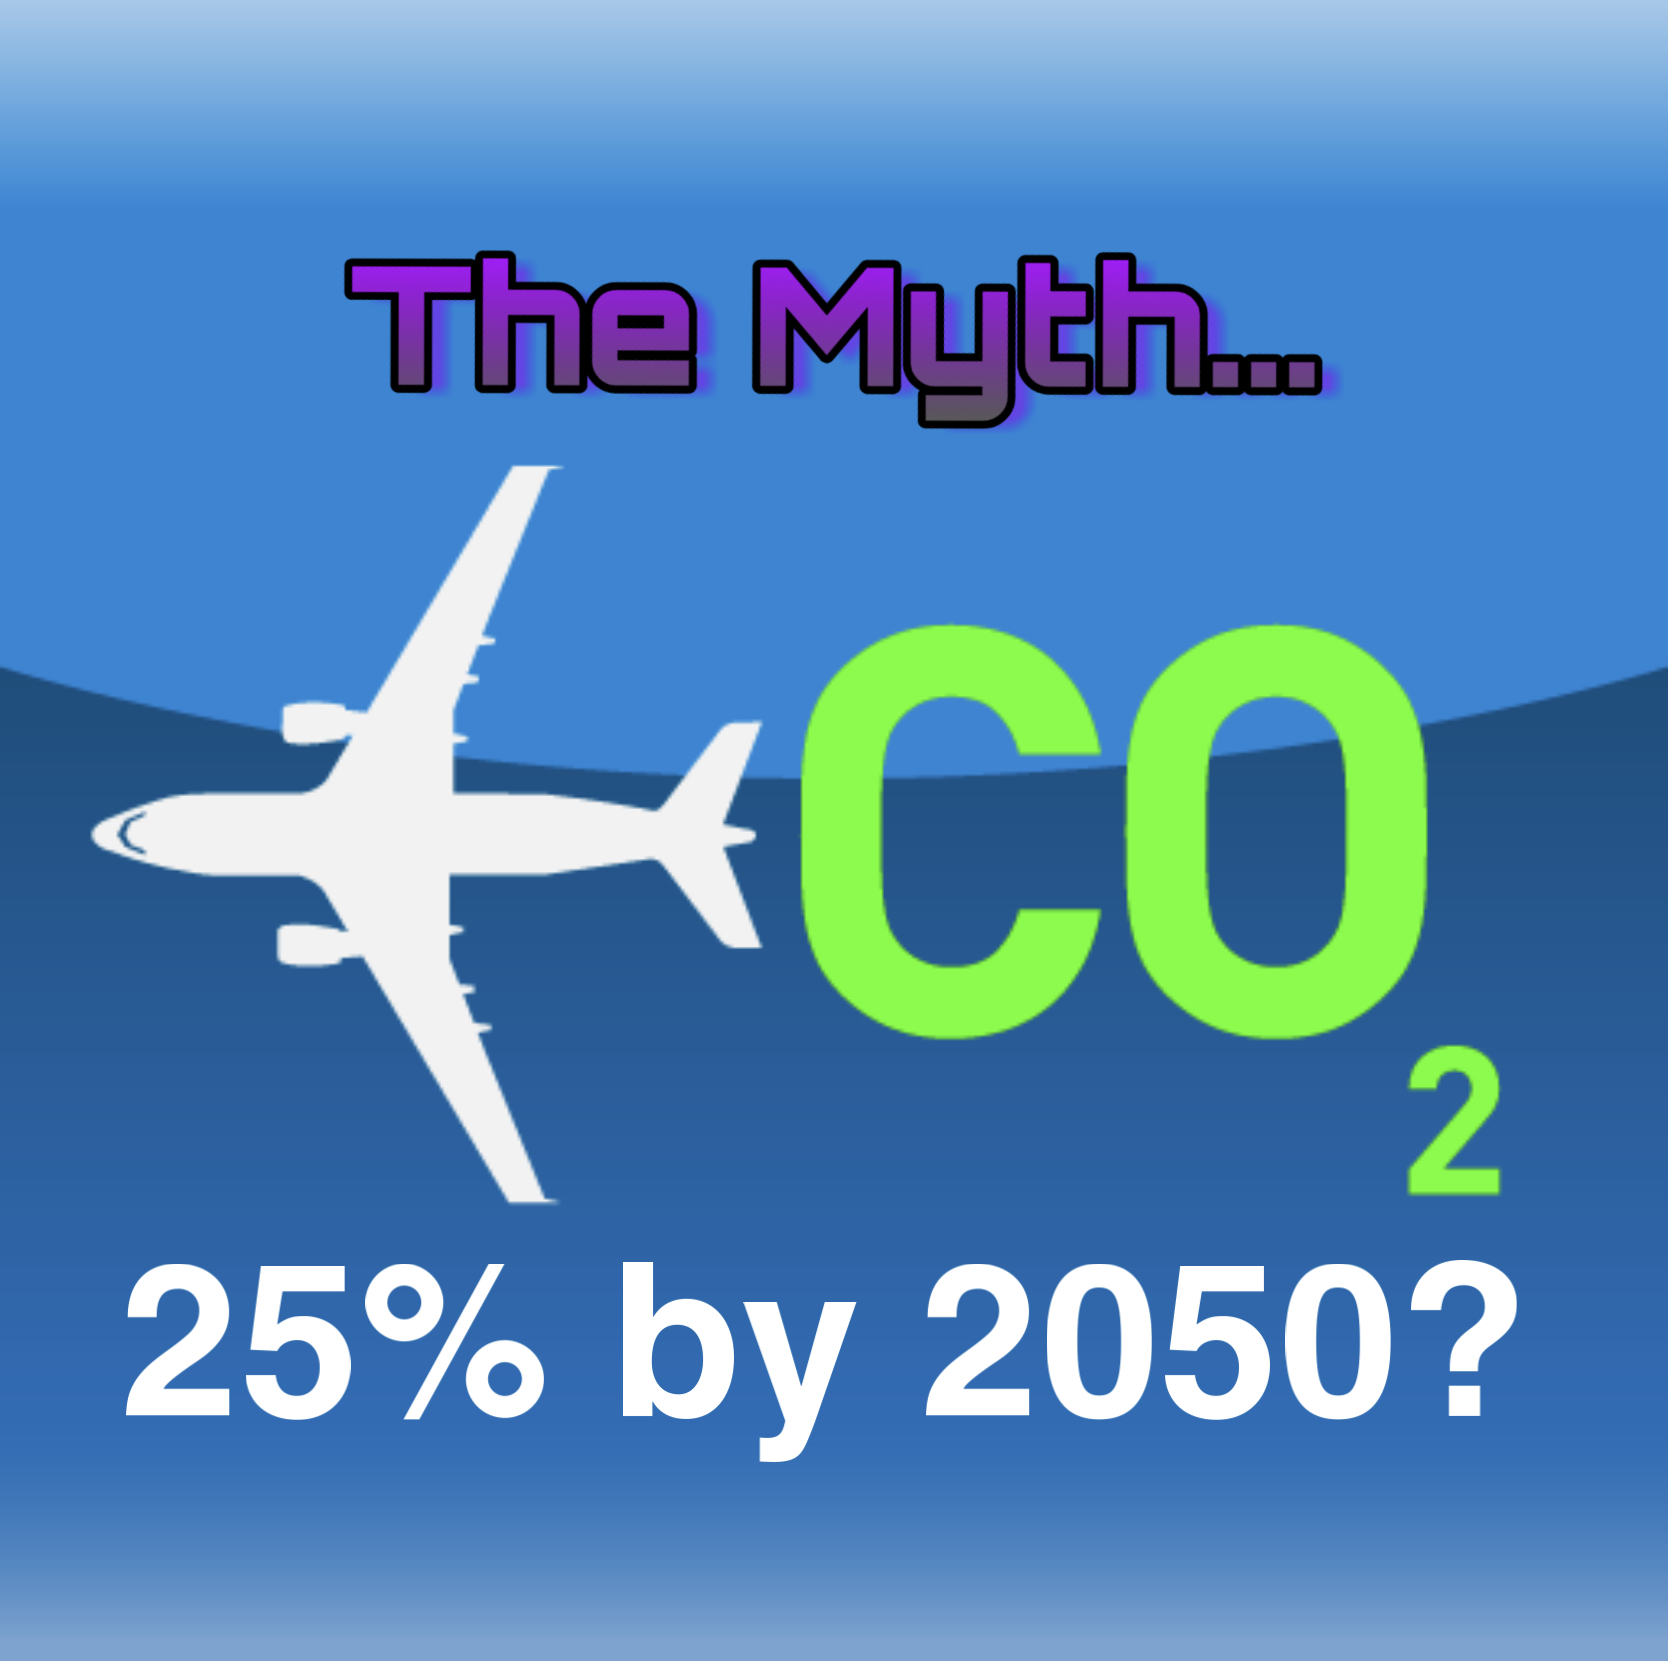 Aviation 25% of carbon emissions by 2050 is a Myth